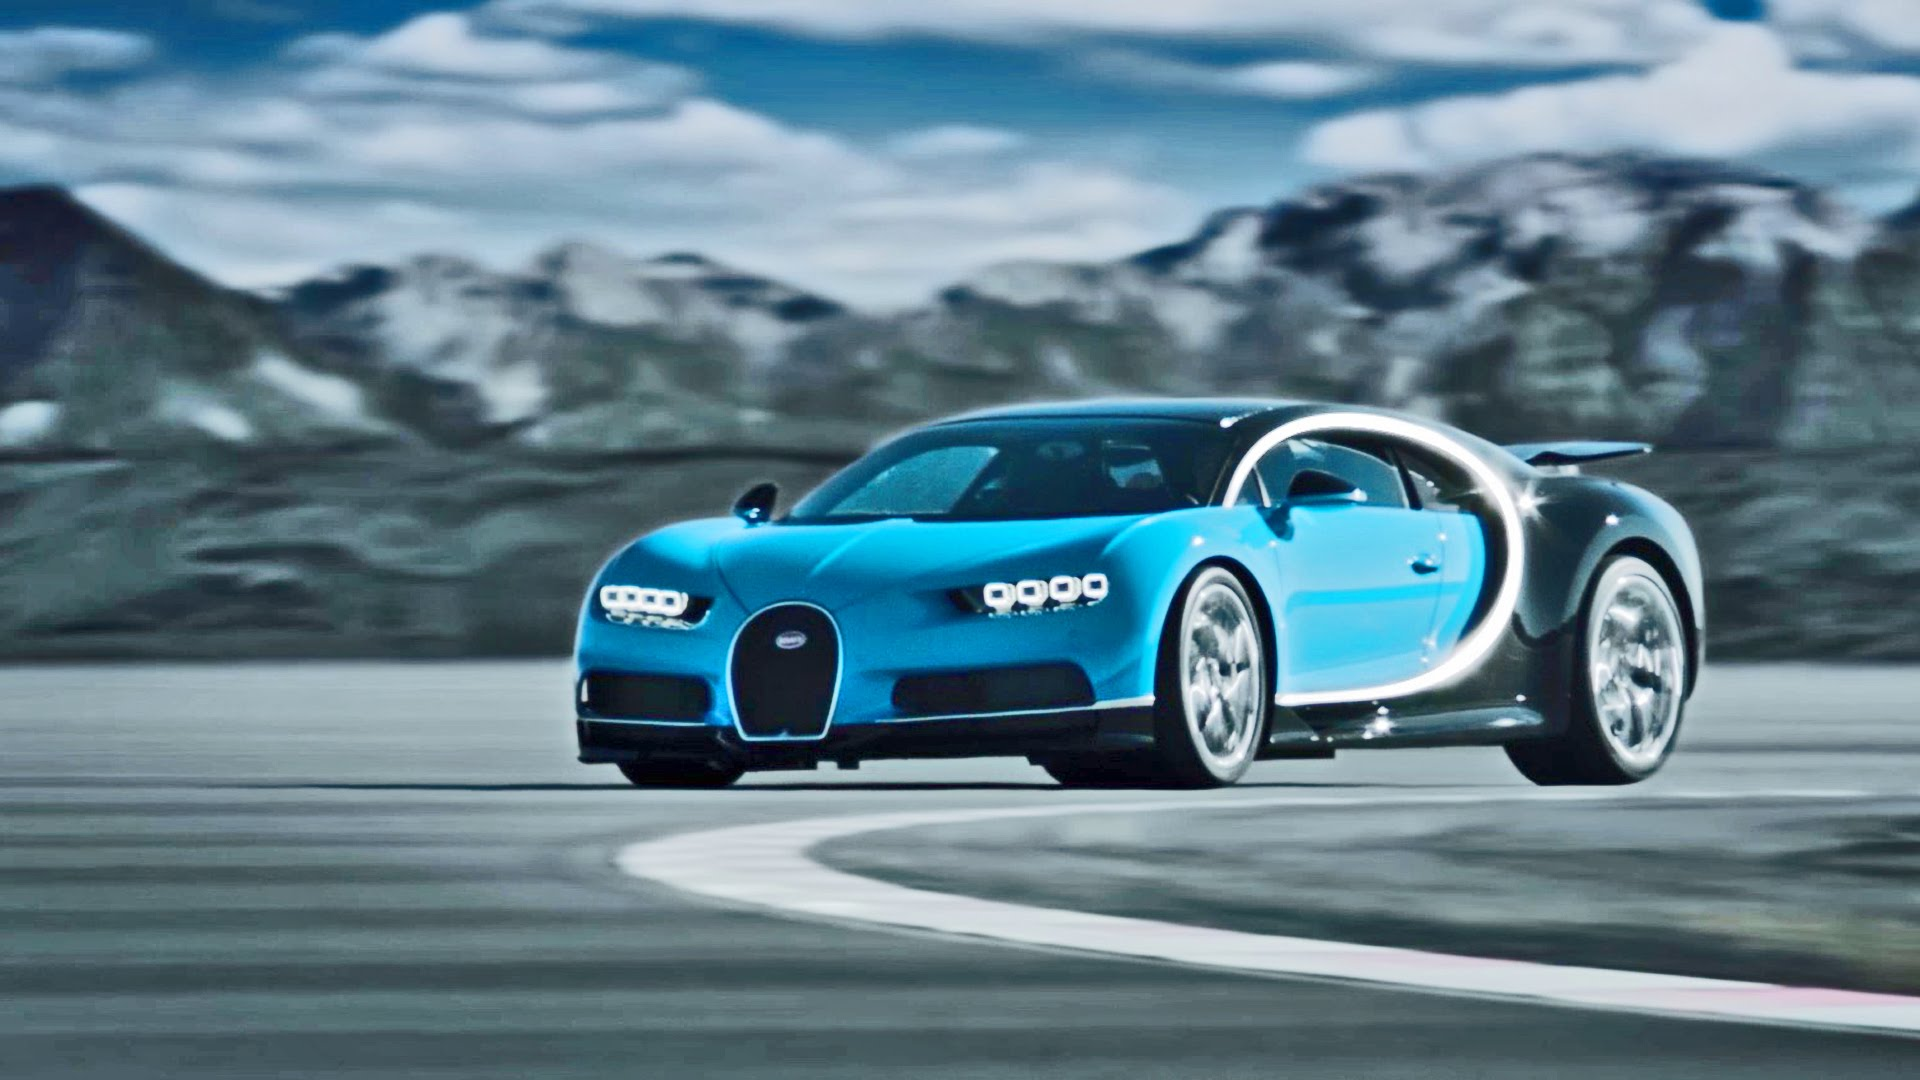 2019 Bugatti Chiron 8 0L W16 Price in UAE, Specs & Review in Dubai, Abu  Dhabi, Sharjah - CarPrices ae